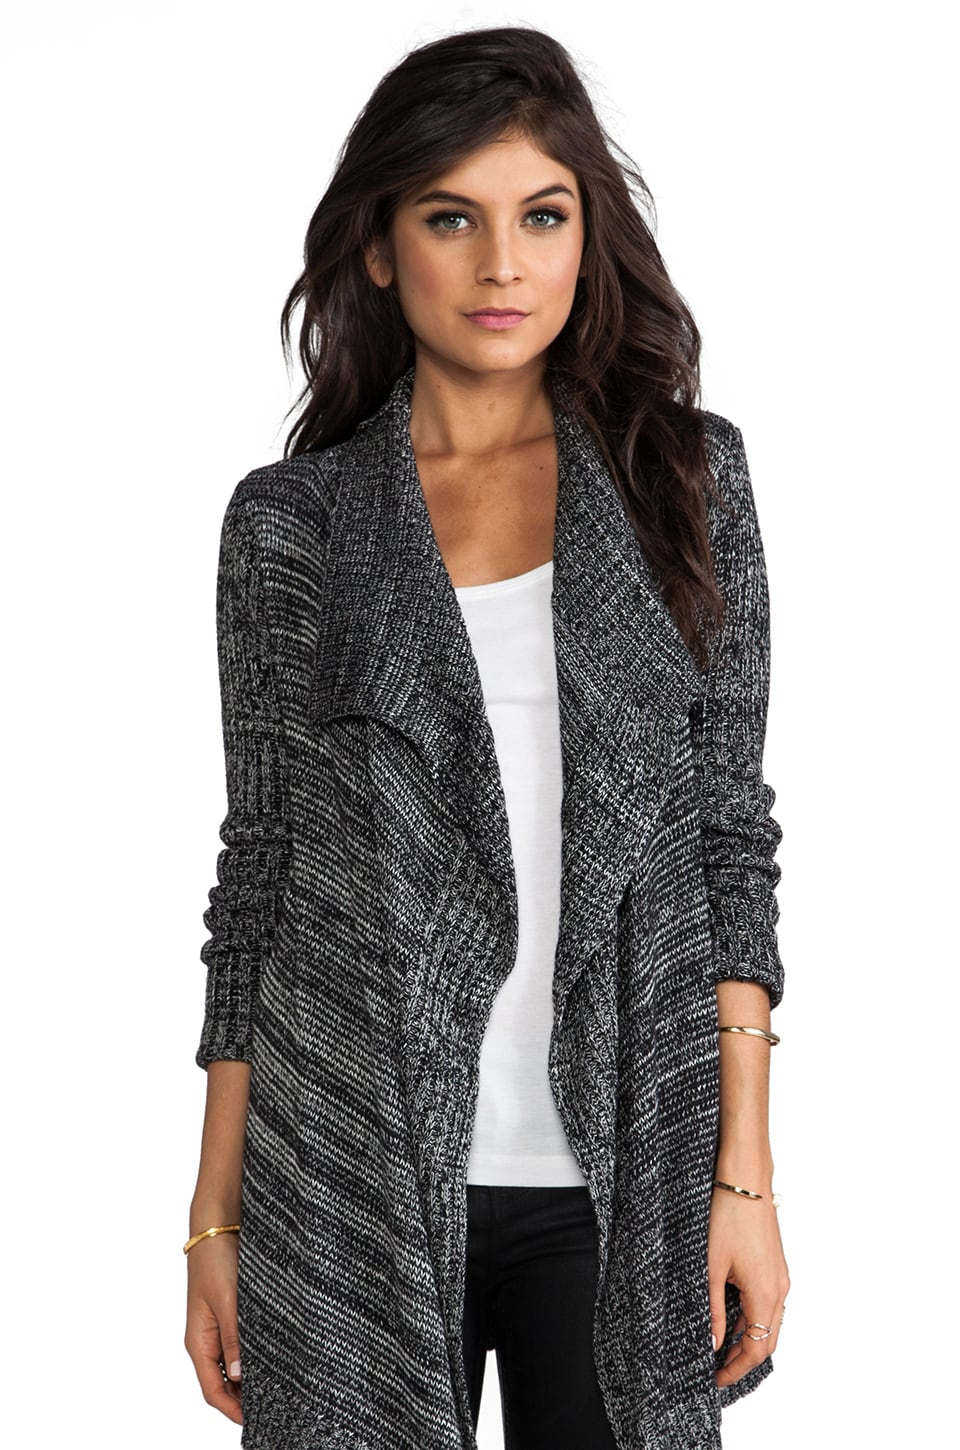 Central Park West Glenrock Draped Cardigan in Black